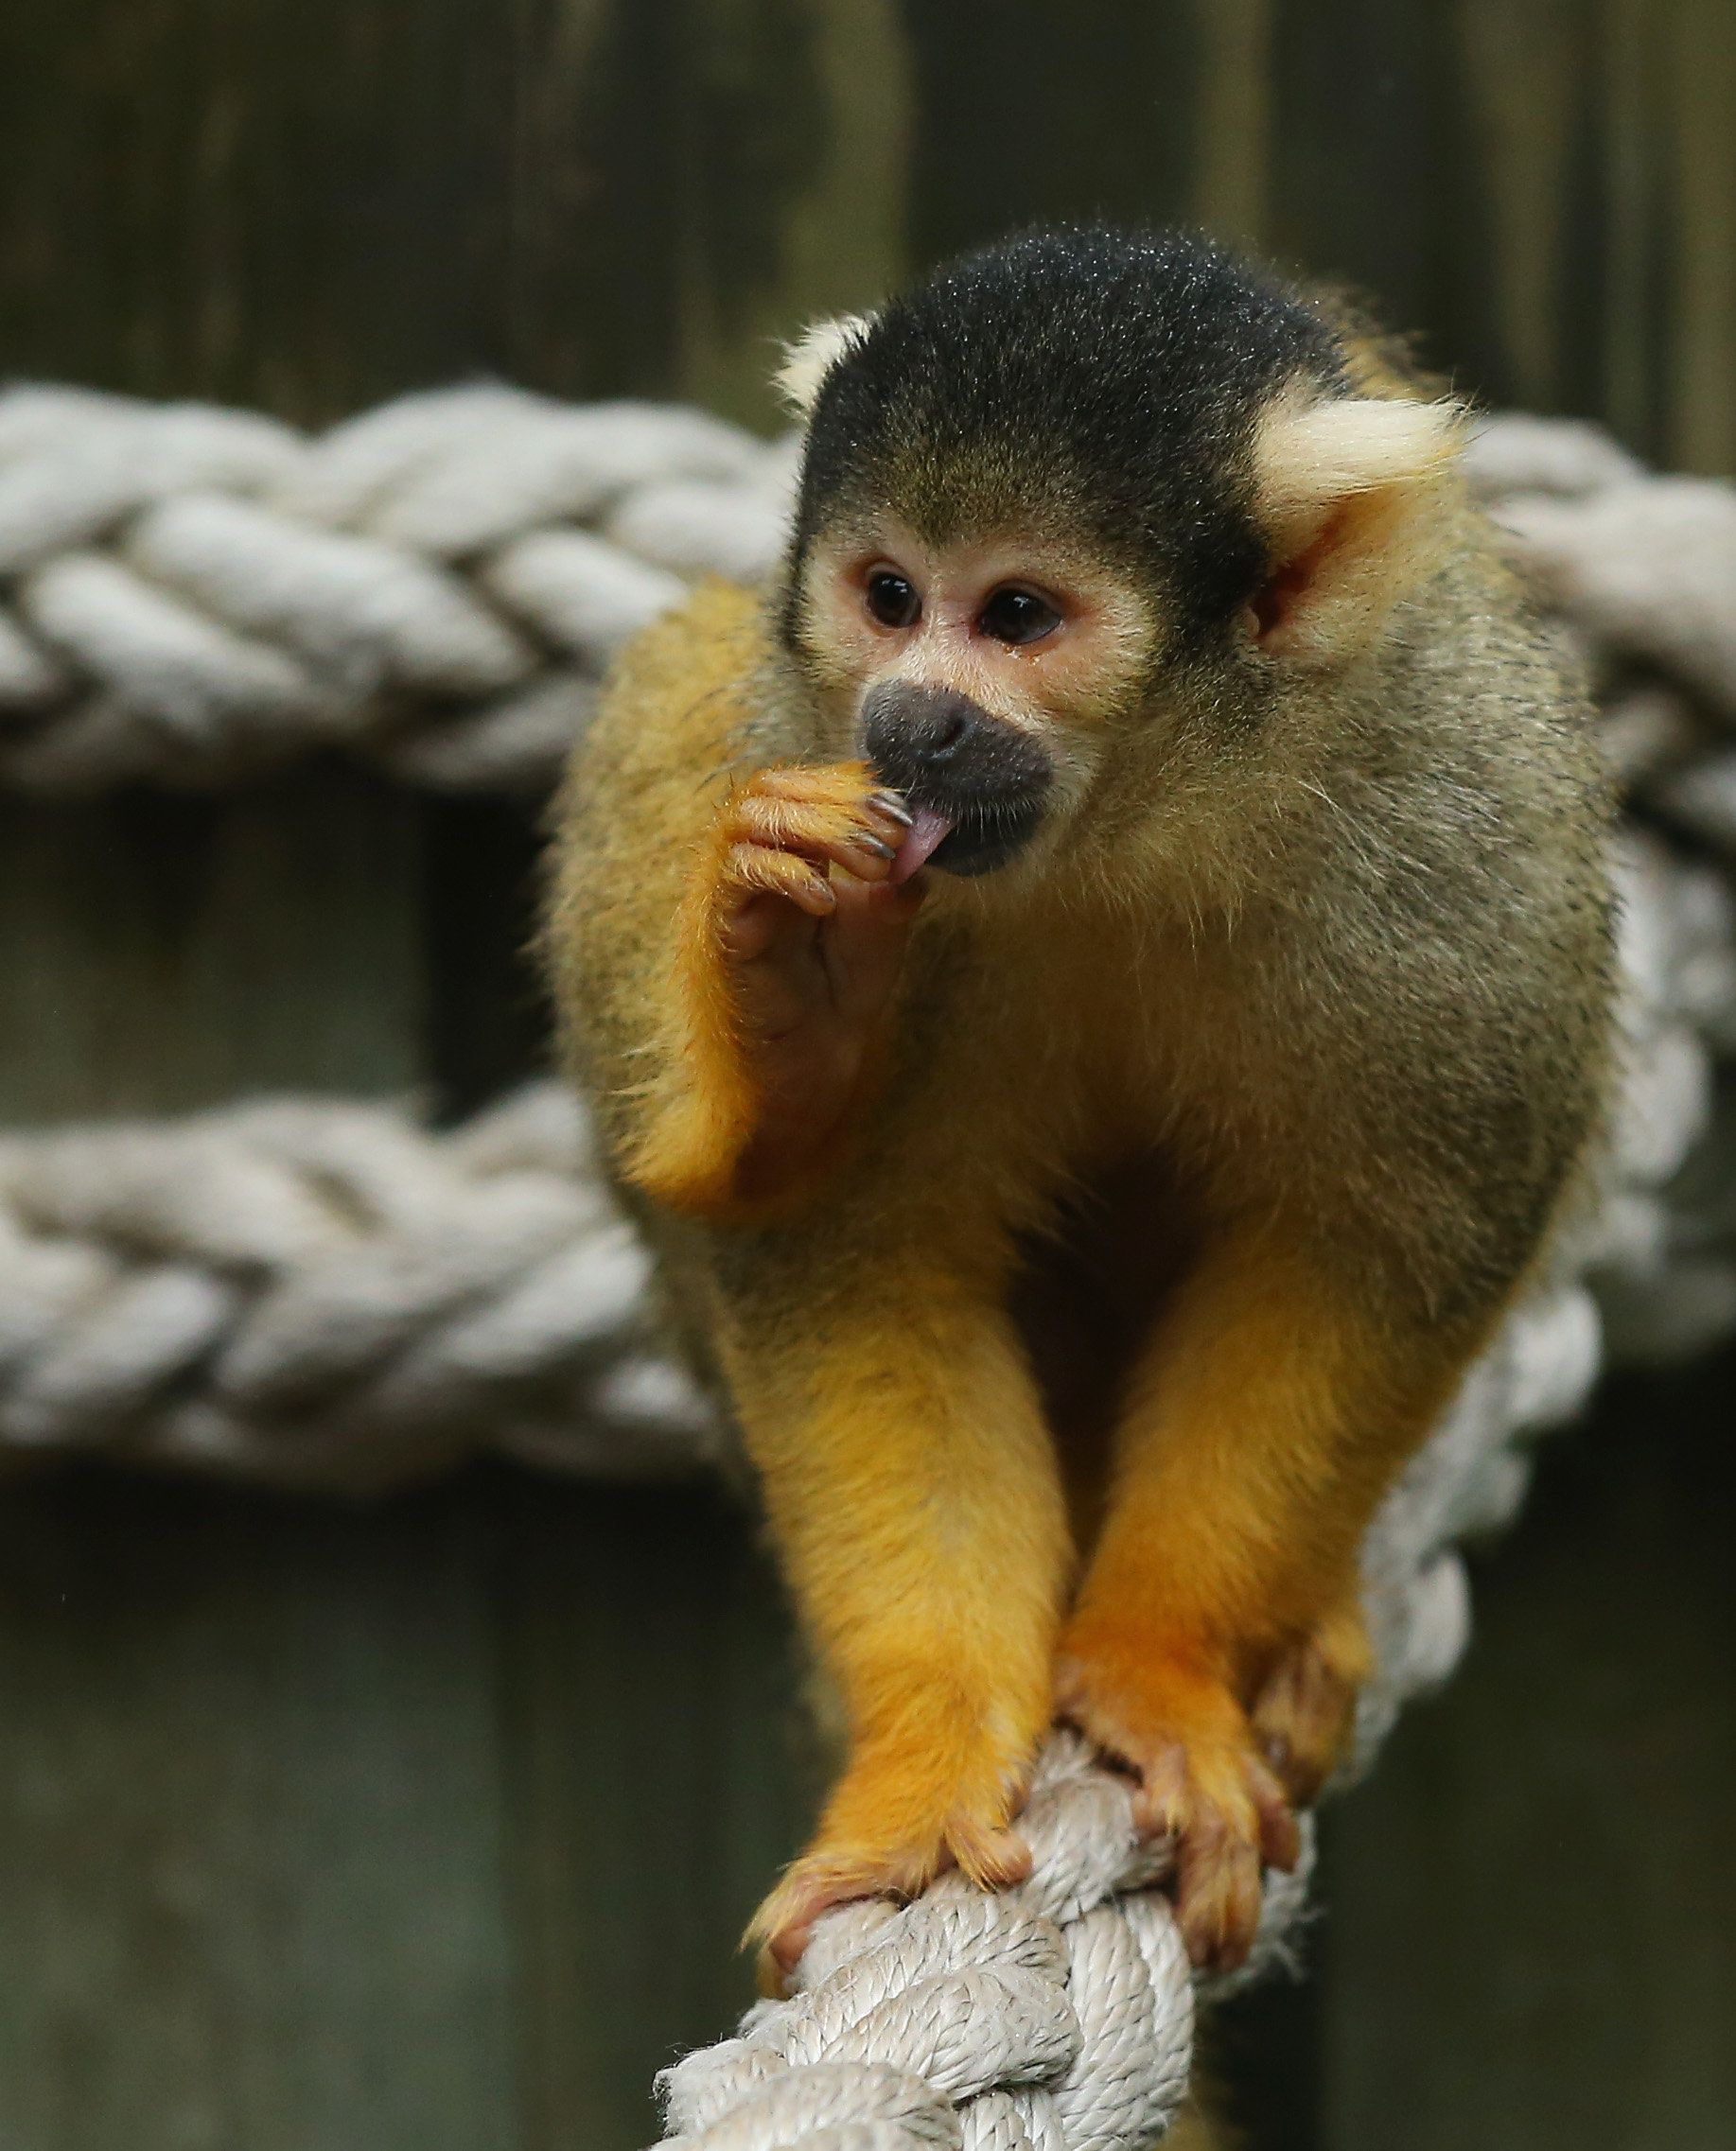 SYDNEY, AUSTRALIA - DECEMBER 15:  A squirrel monkey is seen eating inside its enclosure at Taronga Zoo on December 15, 2016 in Sydney, Australia. The new immersive exhibit allows zoo visitors to observe the Squirrel Monkeys closer than ever before.  (Photo by Don Arnold/WireImage)